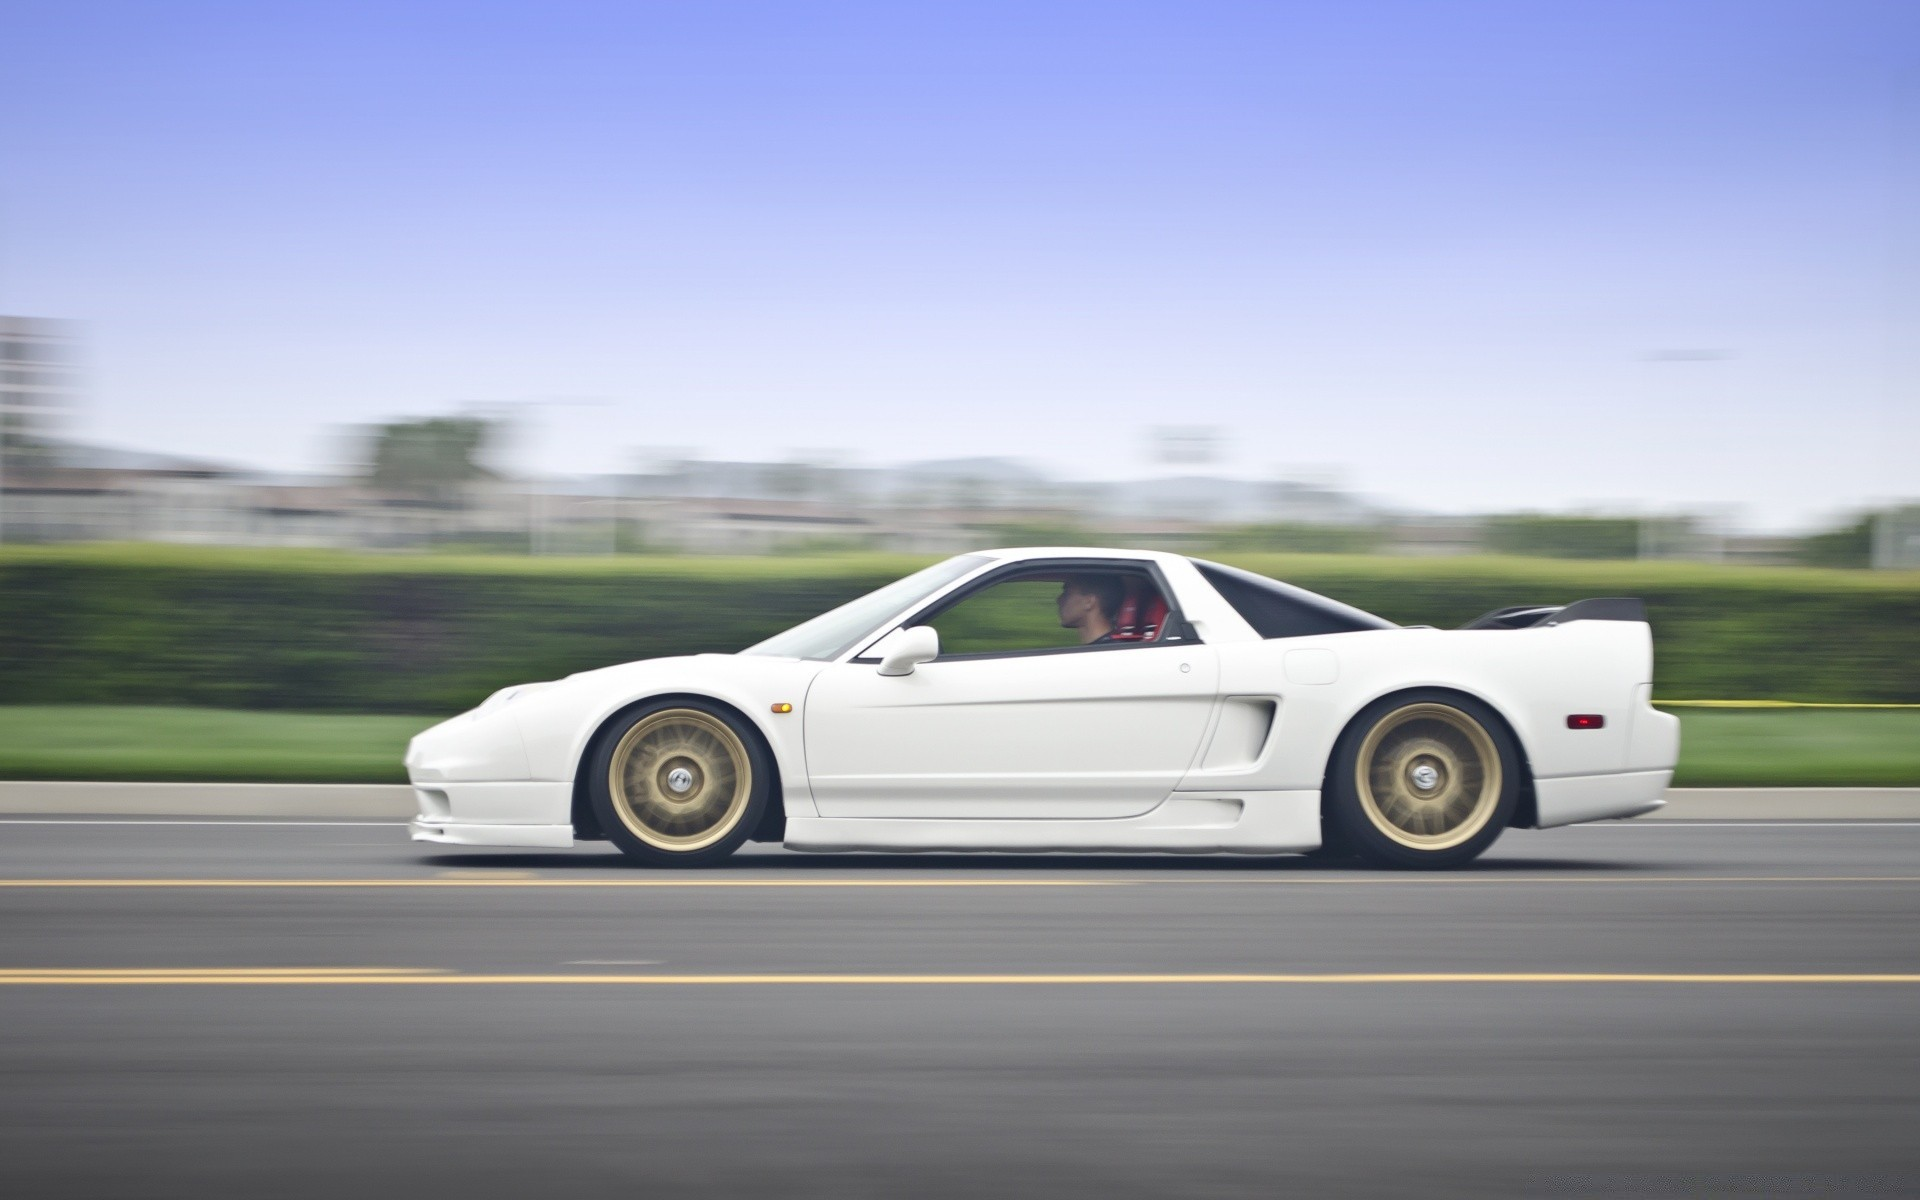 Acura NSX - Android wallpapers